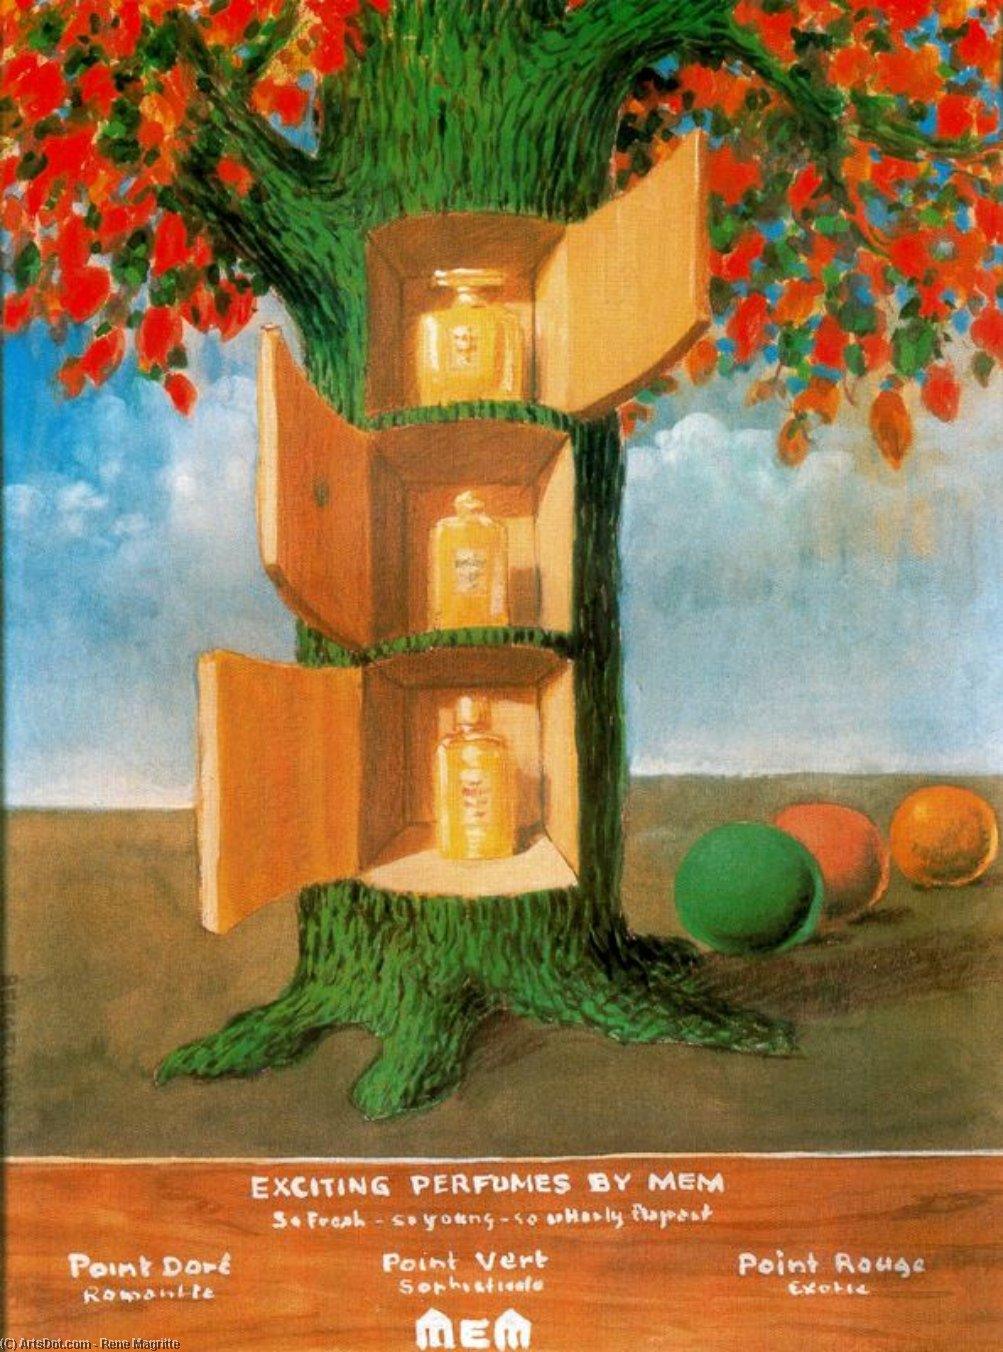 Exciting perfumes by Mem, Oil by Rene Magritte (1898-1967, Belgium)